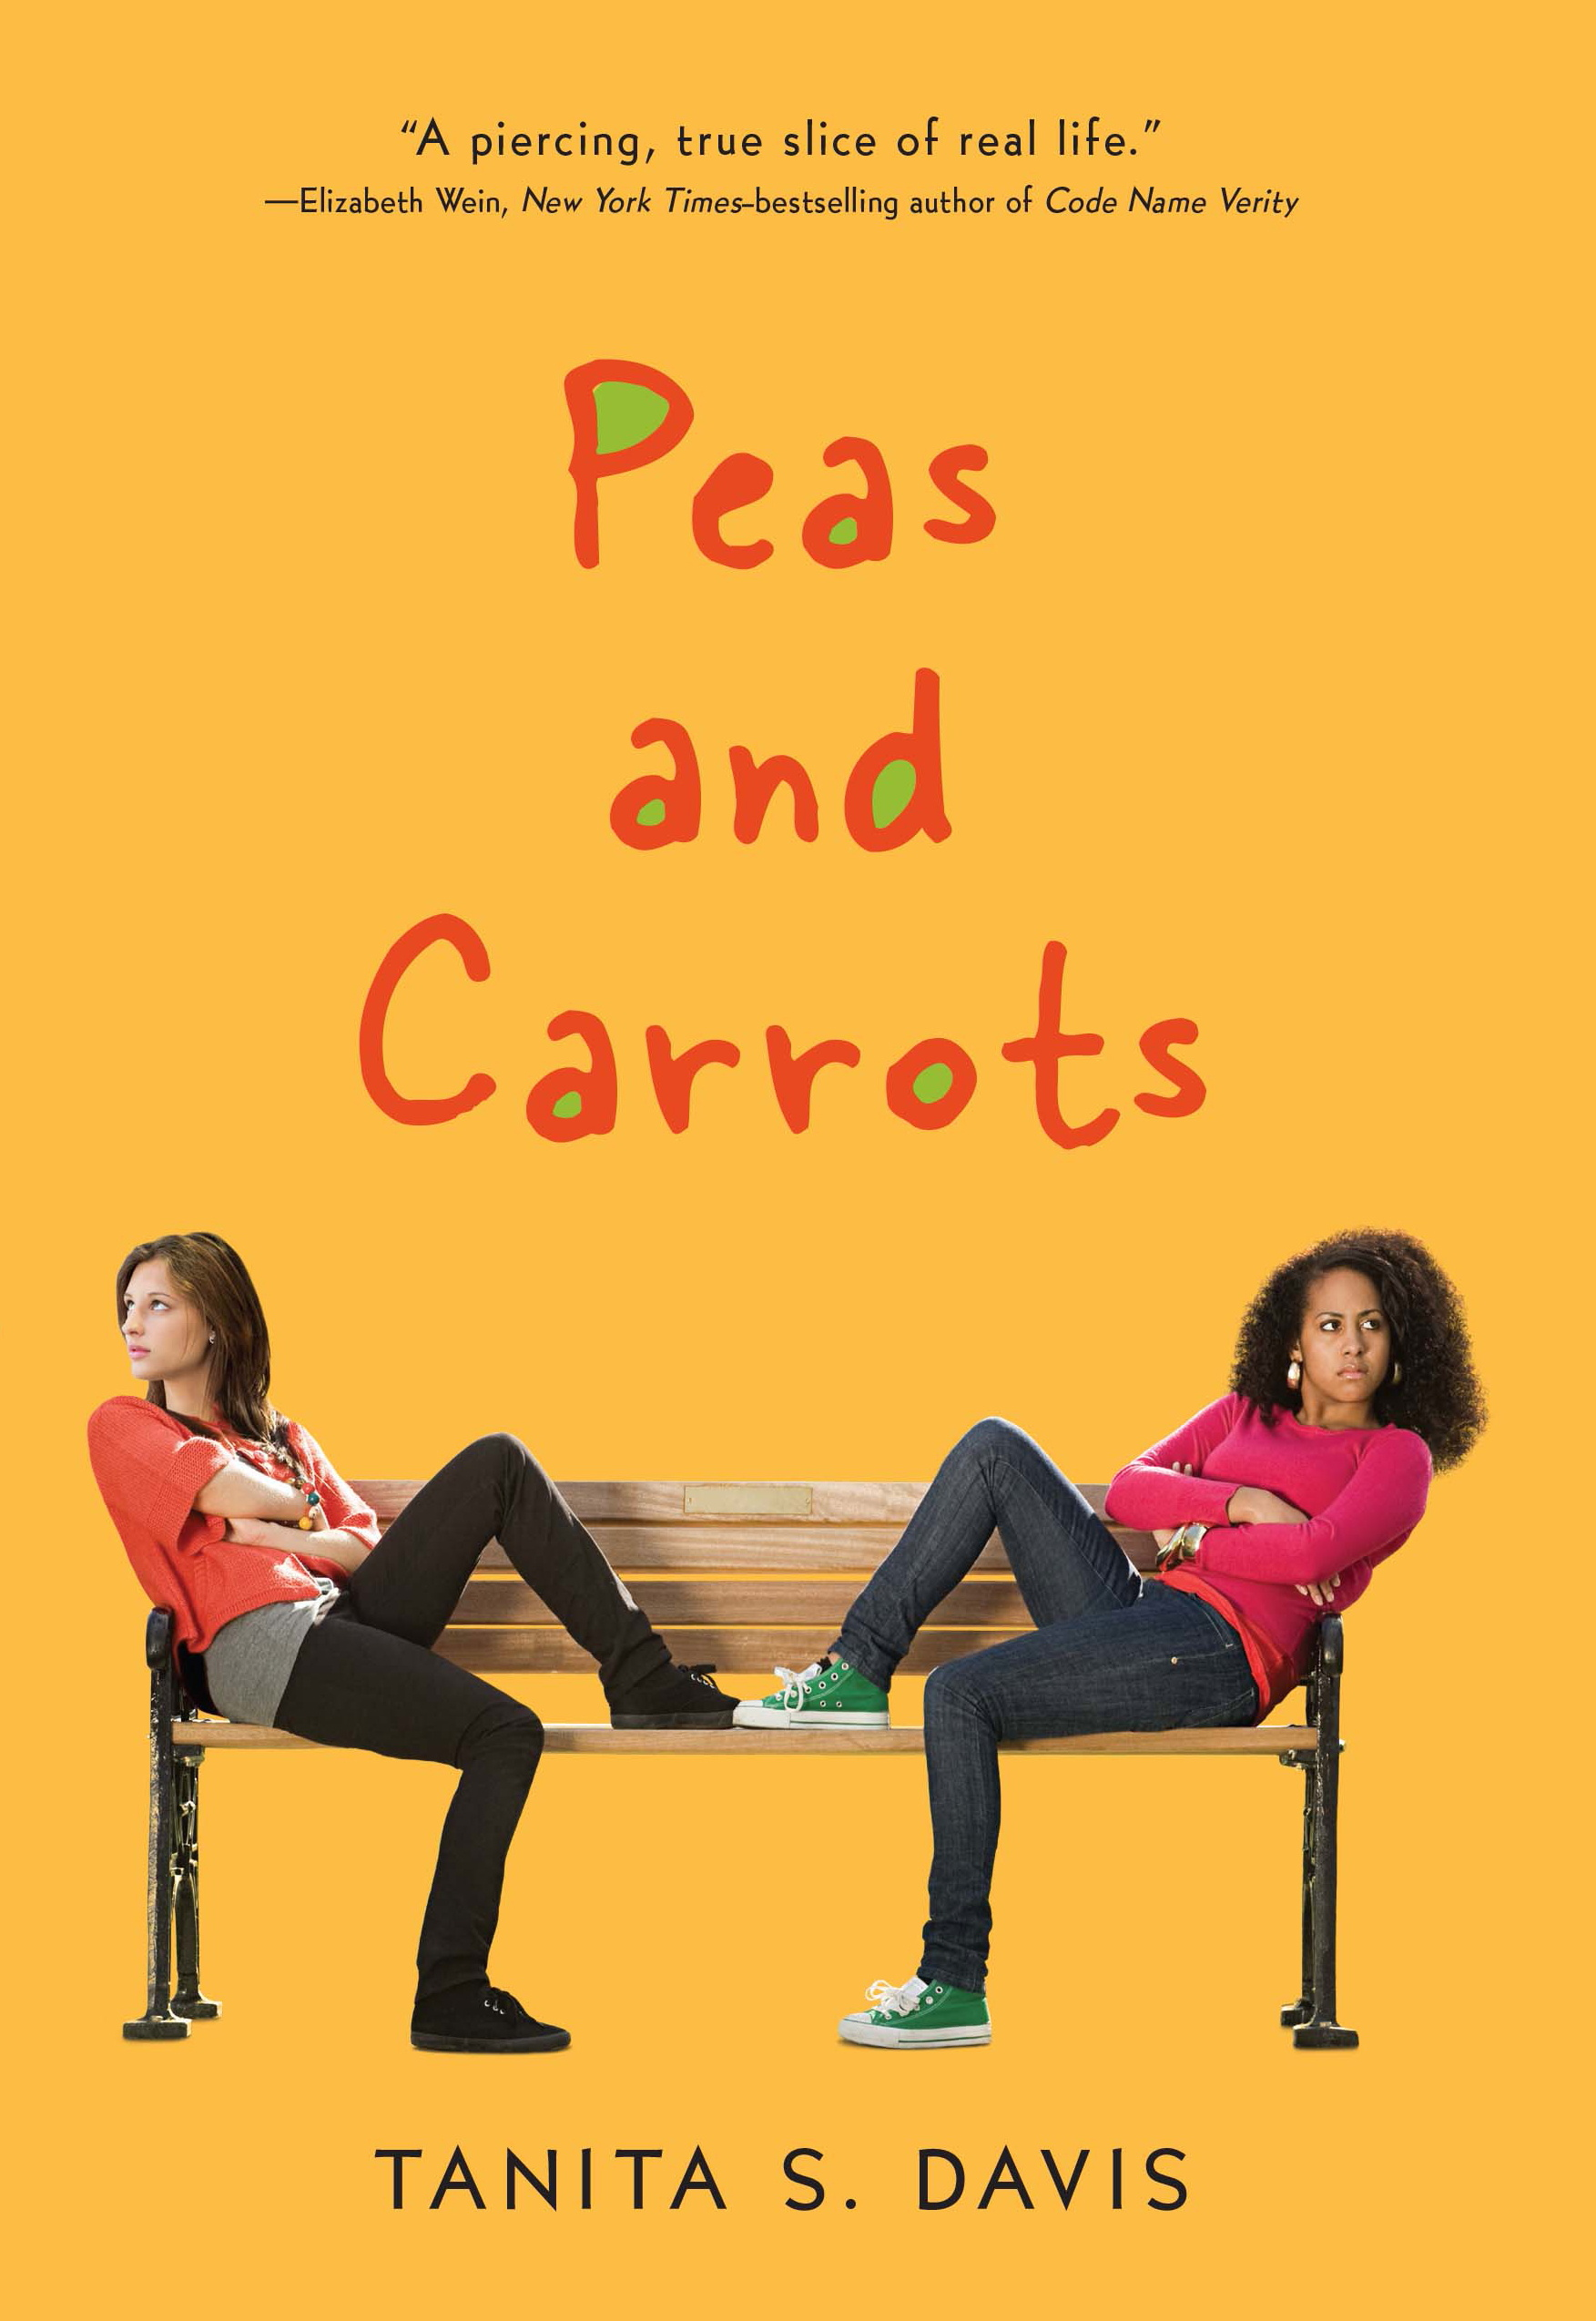 Peas and Carrots by Tanita S. Davis